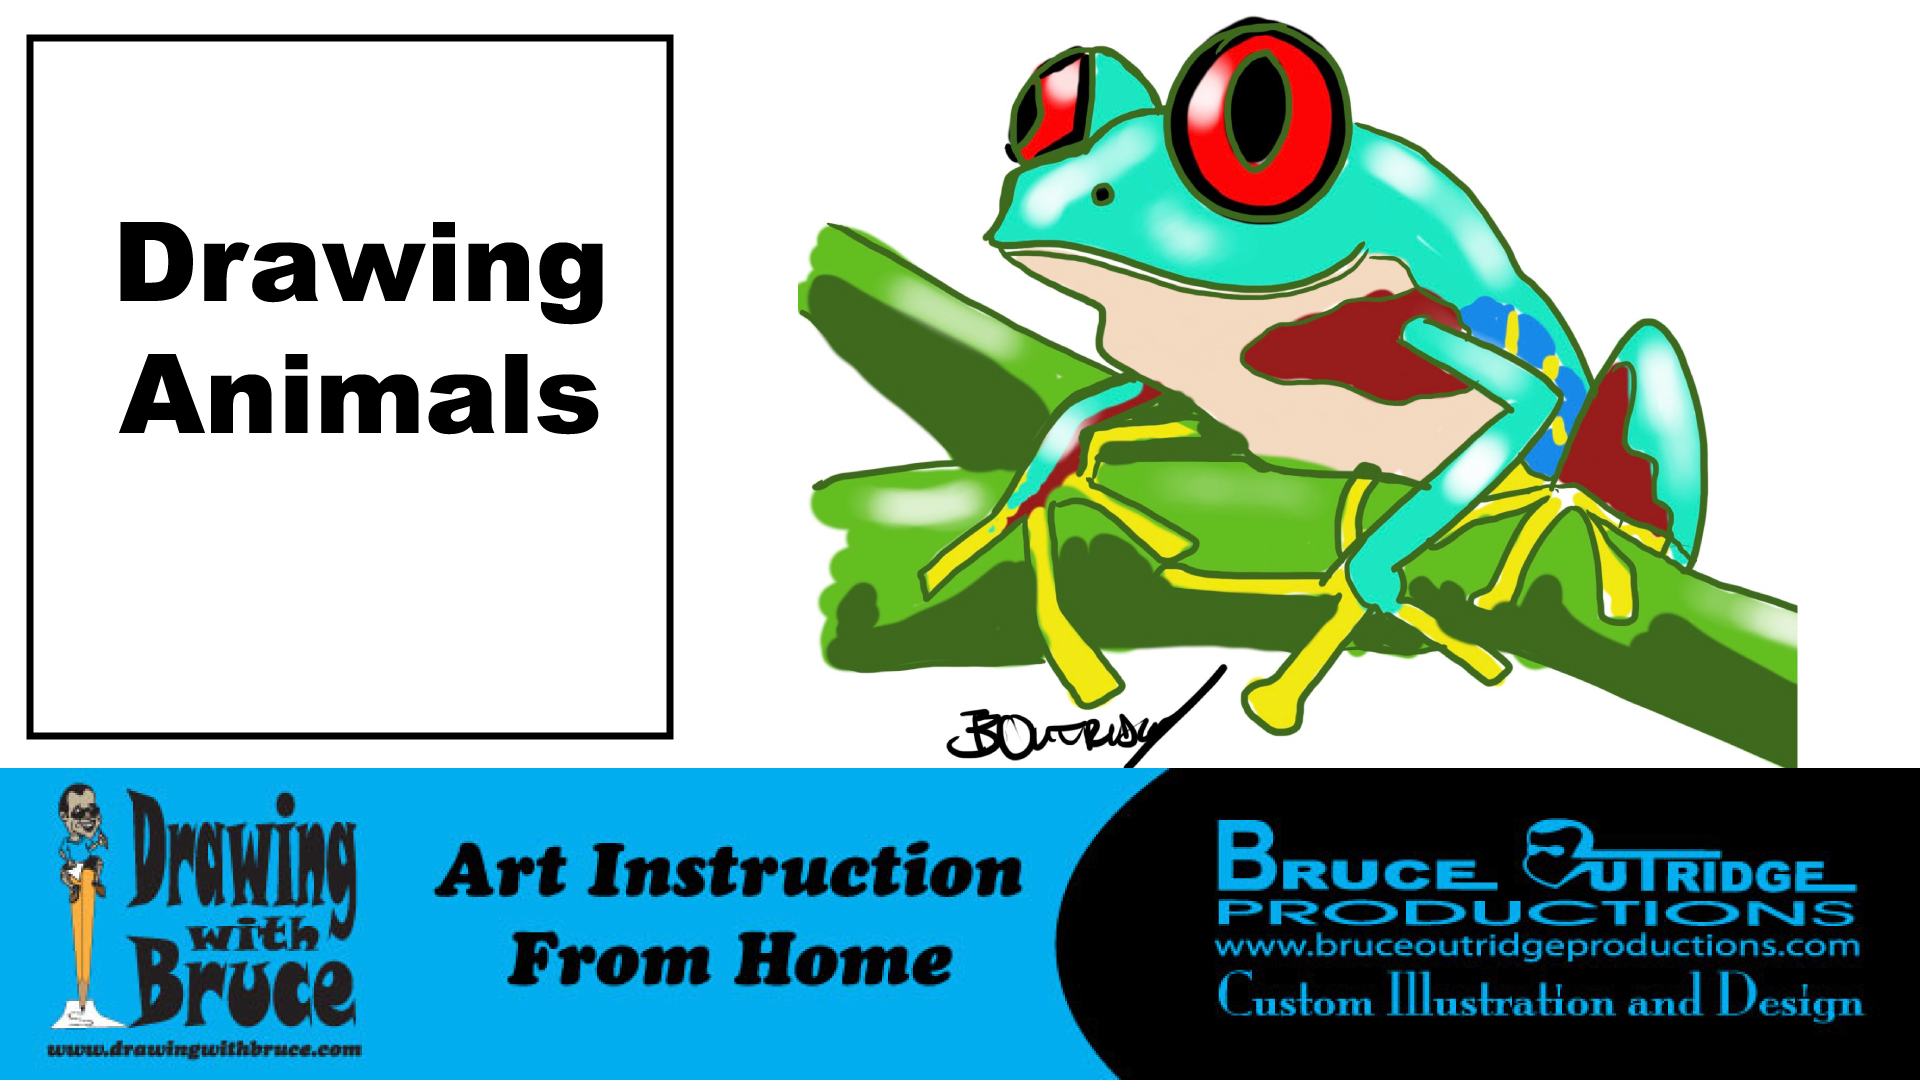 Learn to Draw Animals-Online Art Instruction for Kids